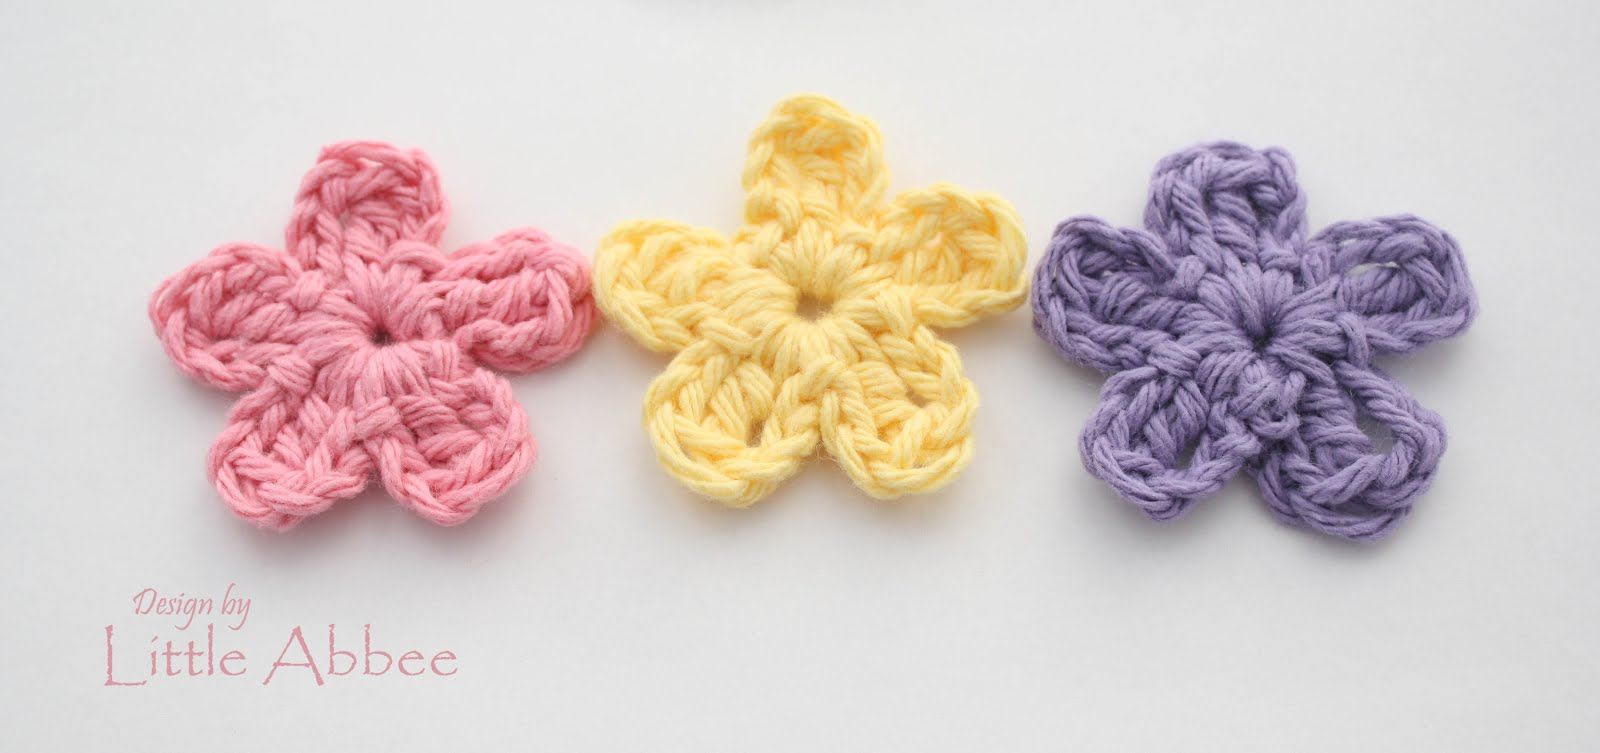 Little abbee simple flower pattern you will only need a few supplies to make these simple flowers materials needed any size crochet hook i used a size h for my flowers bankloansurffo Gallery